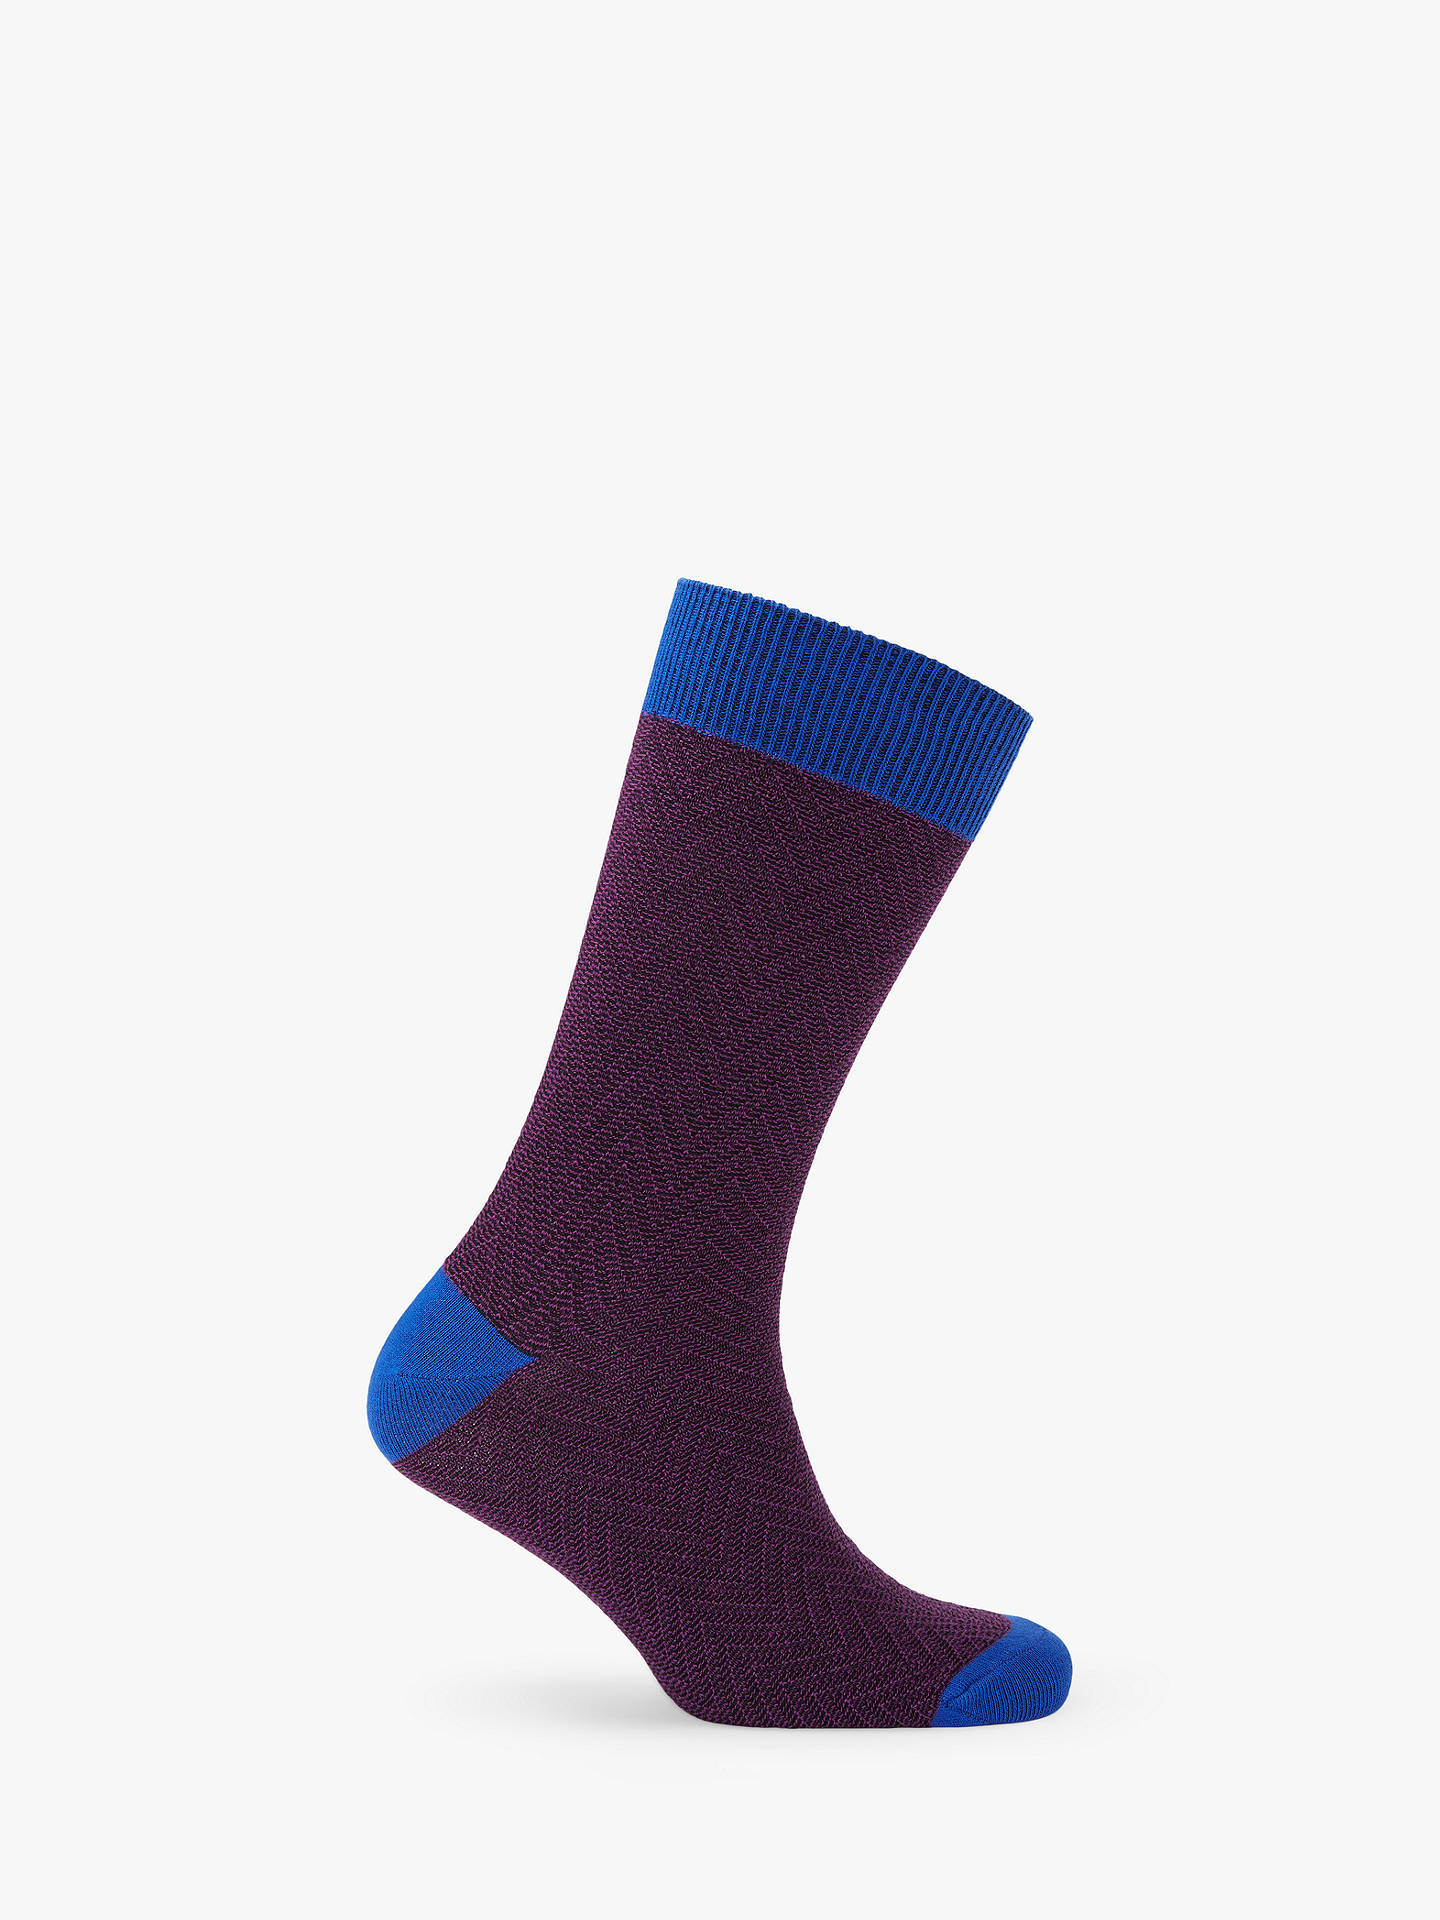 BuyTed Baker Doni Contrast Heringbone Socks, One Size, Purple Online at johnlewis.com